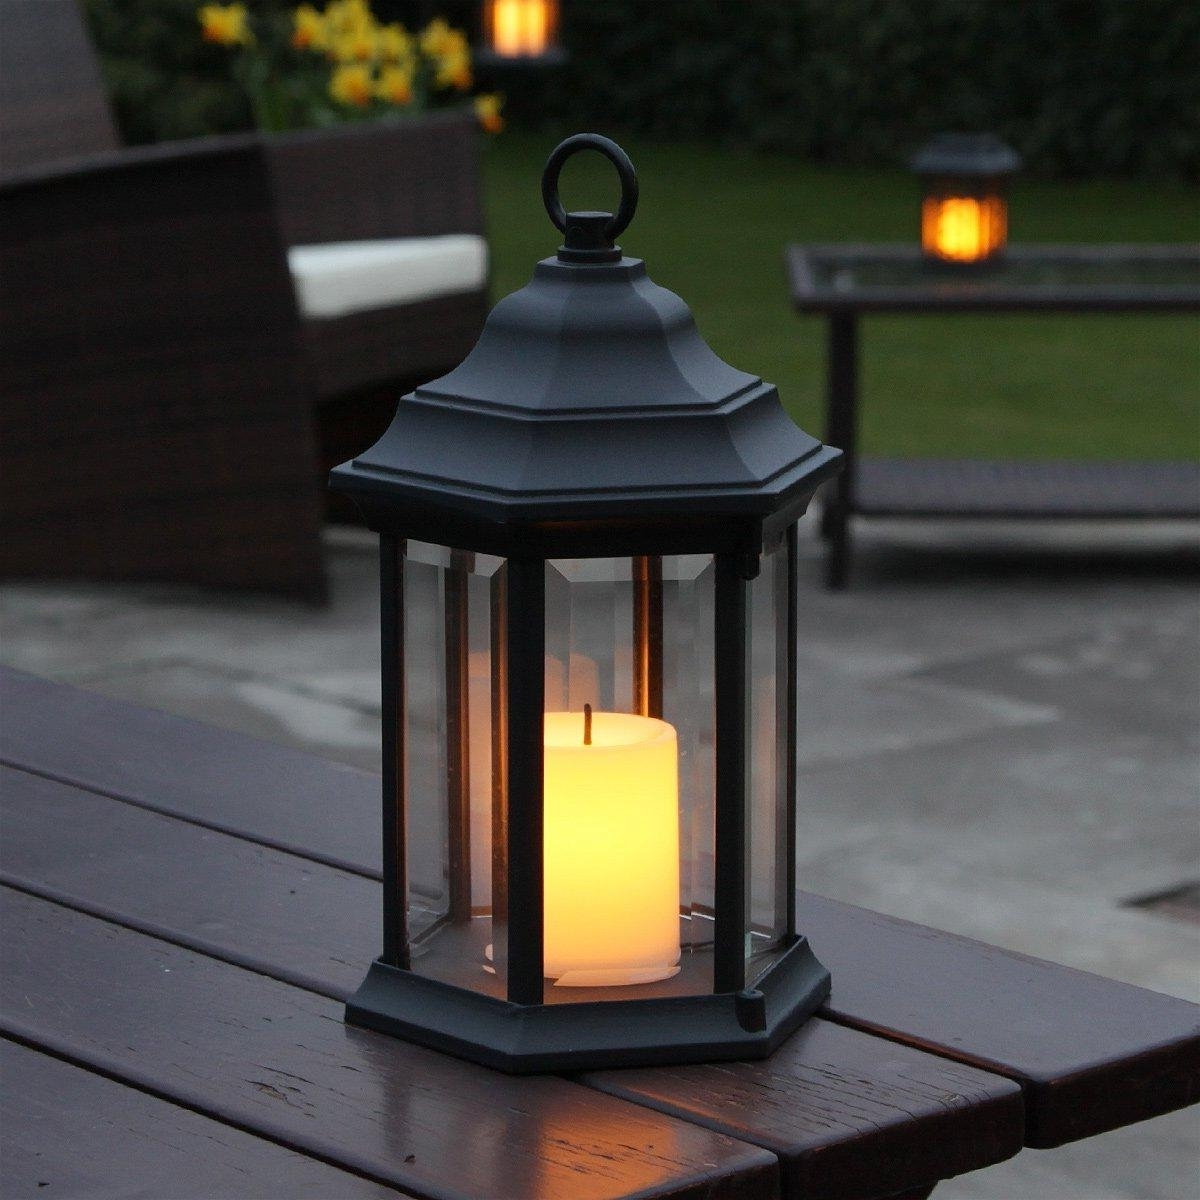 Famous Outdoor Lanterns With Battery Candles Within Outdoor Lighting For Sale – Outdoor Lights Prices, Brands & Review (View 4 of 20)